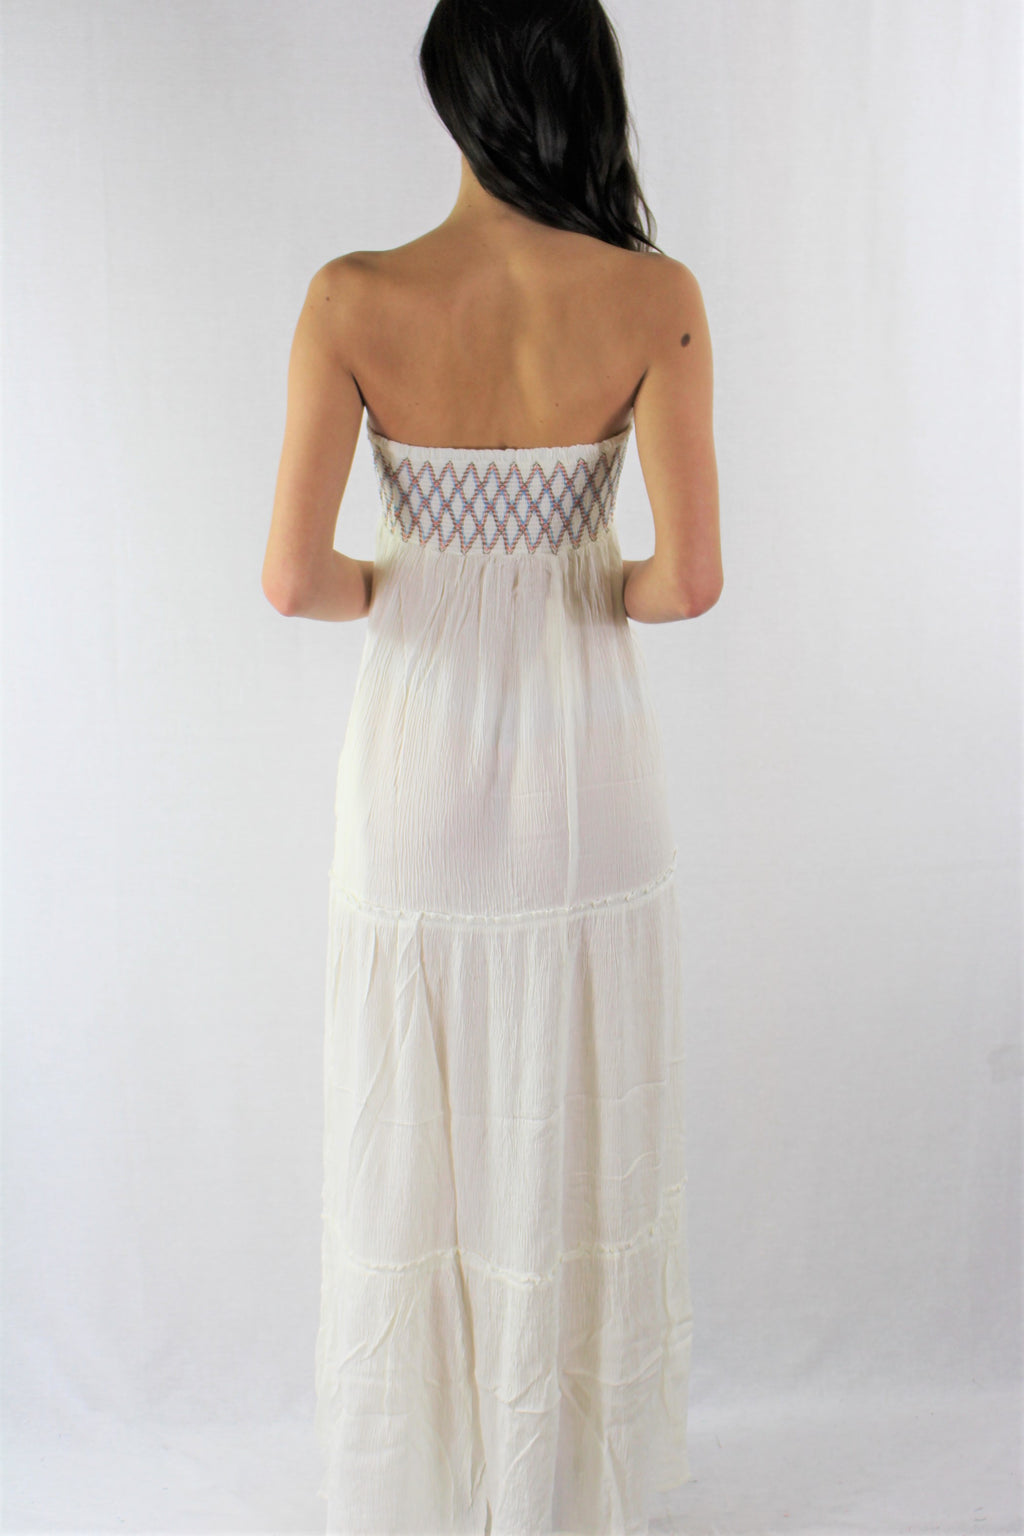 Women's Casual Strapless Dress